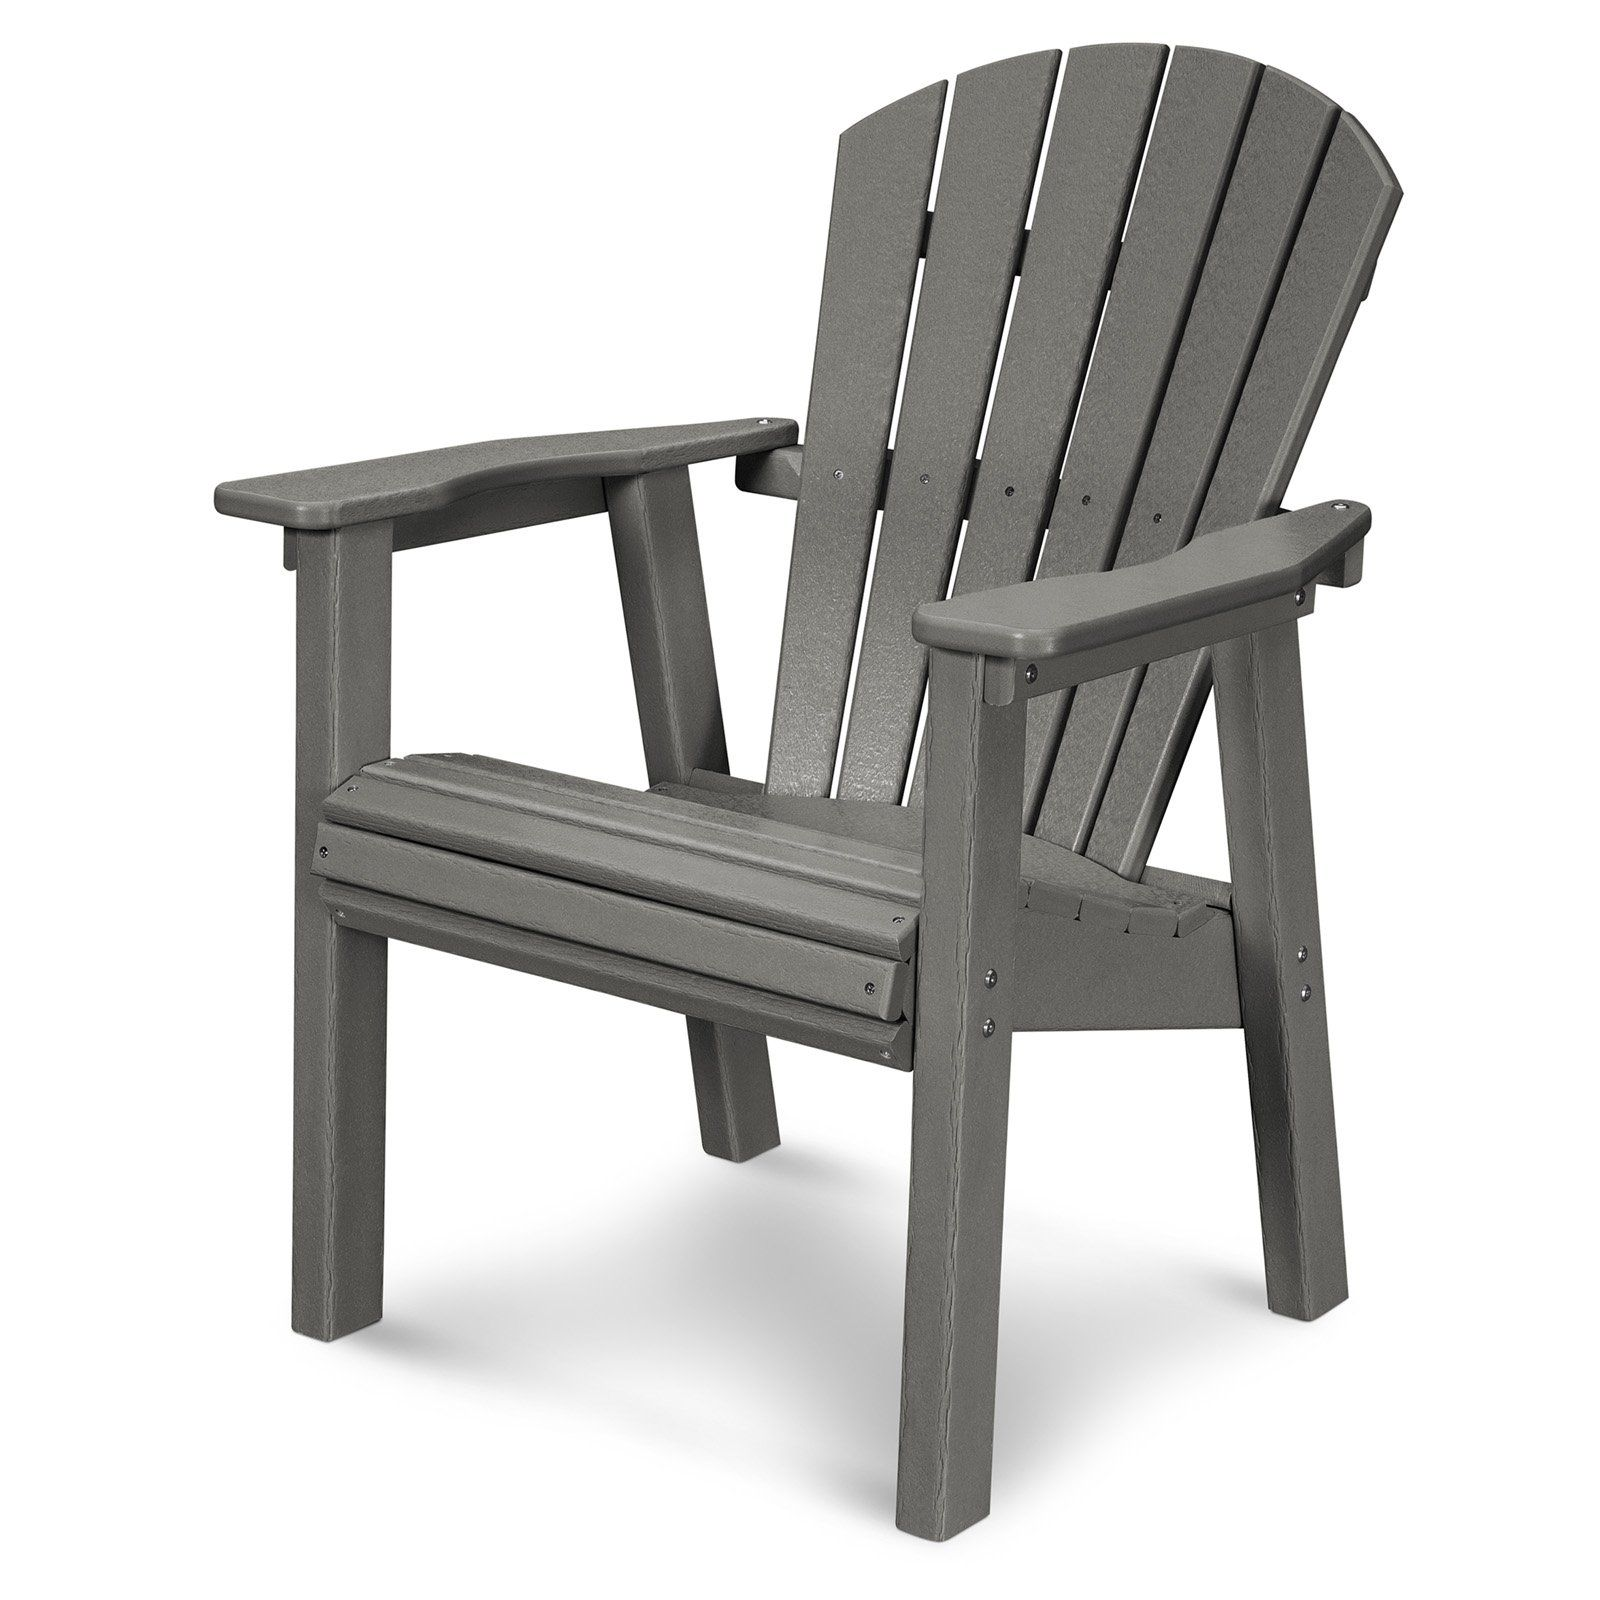 Outdoor Polywood Seashell Recycled Plastic Dining Chair Slate Grey